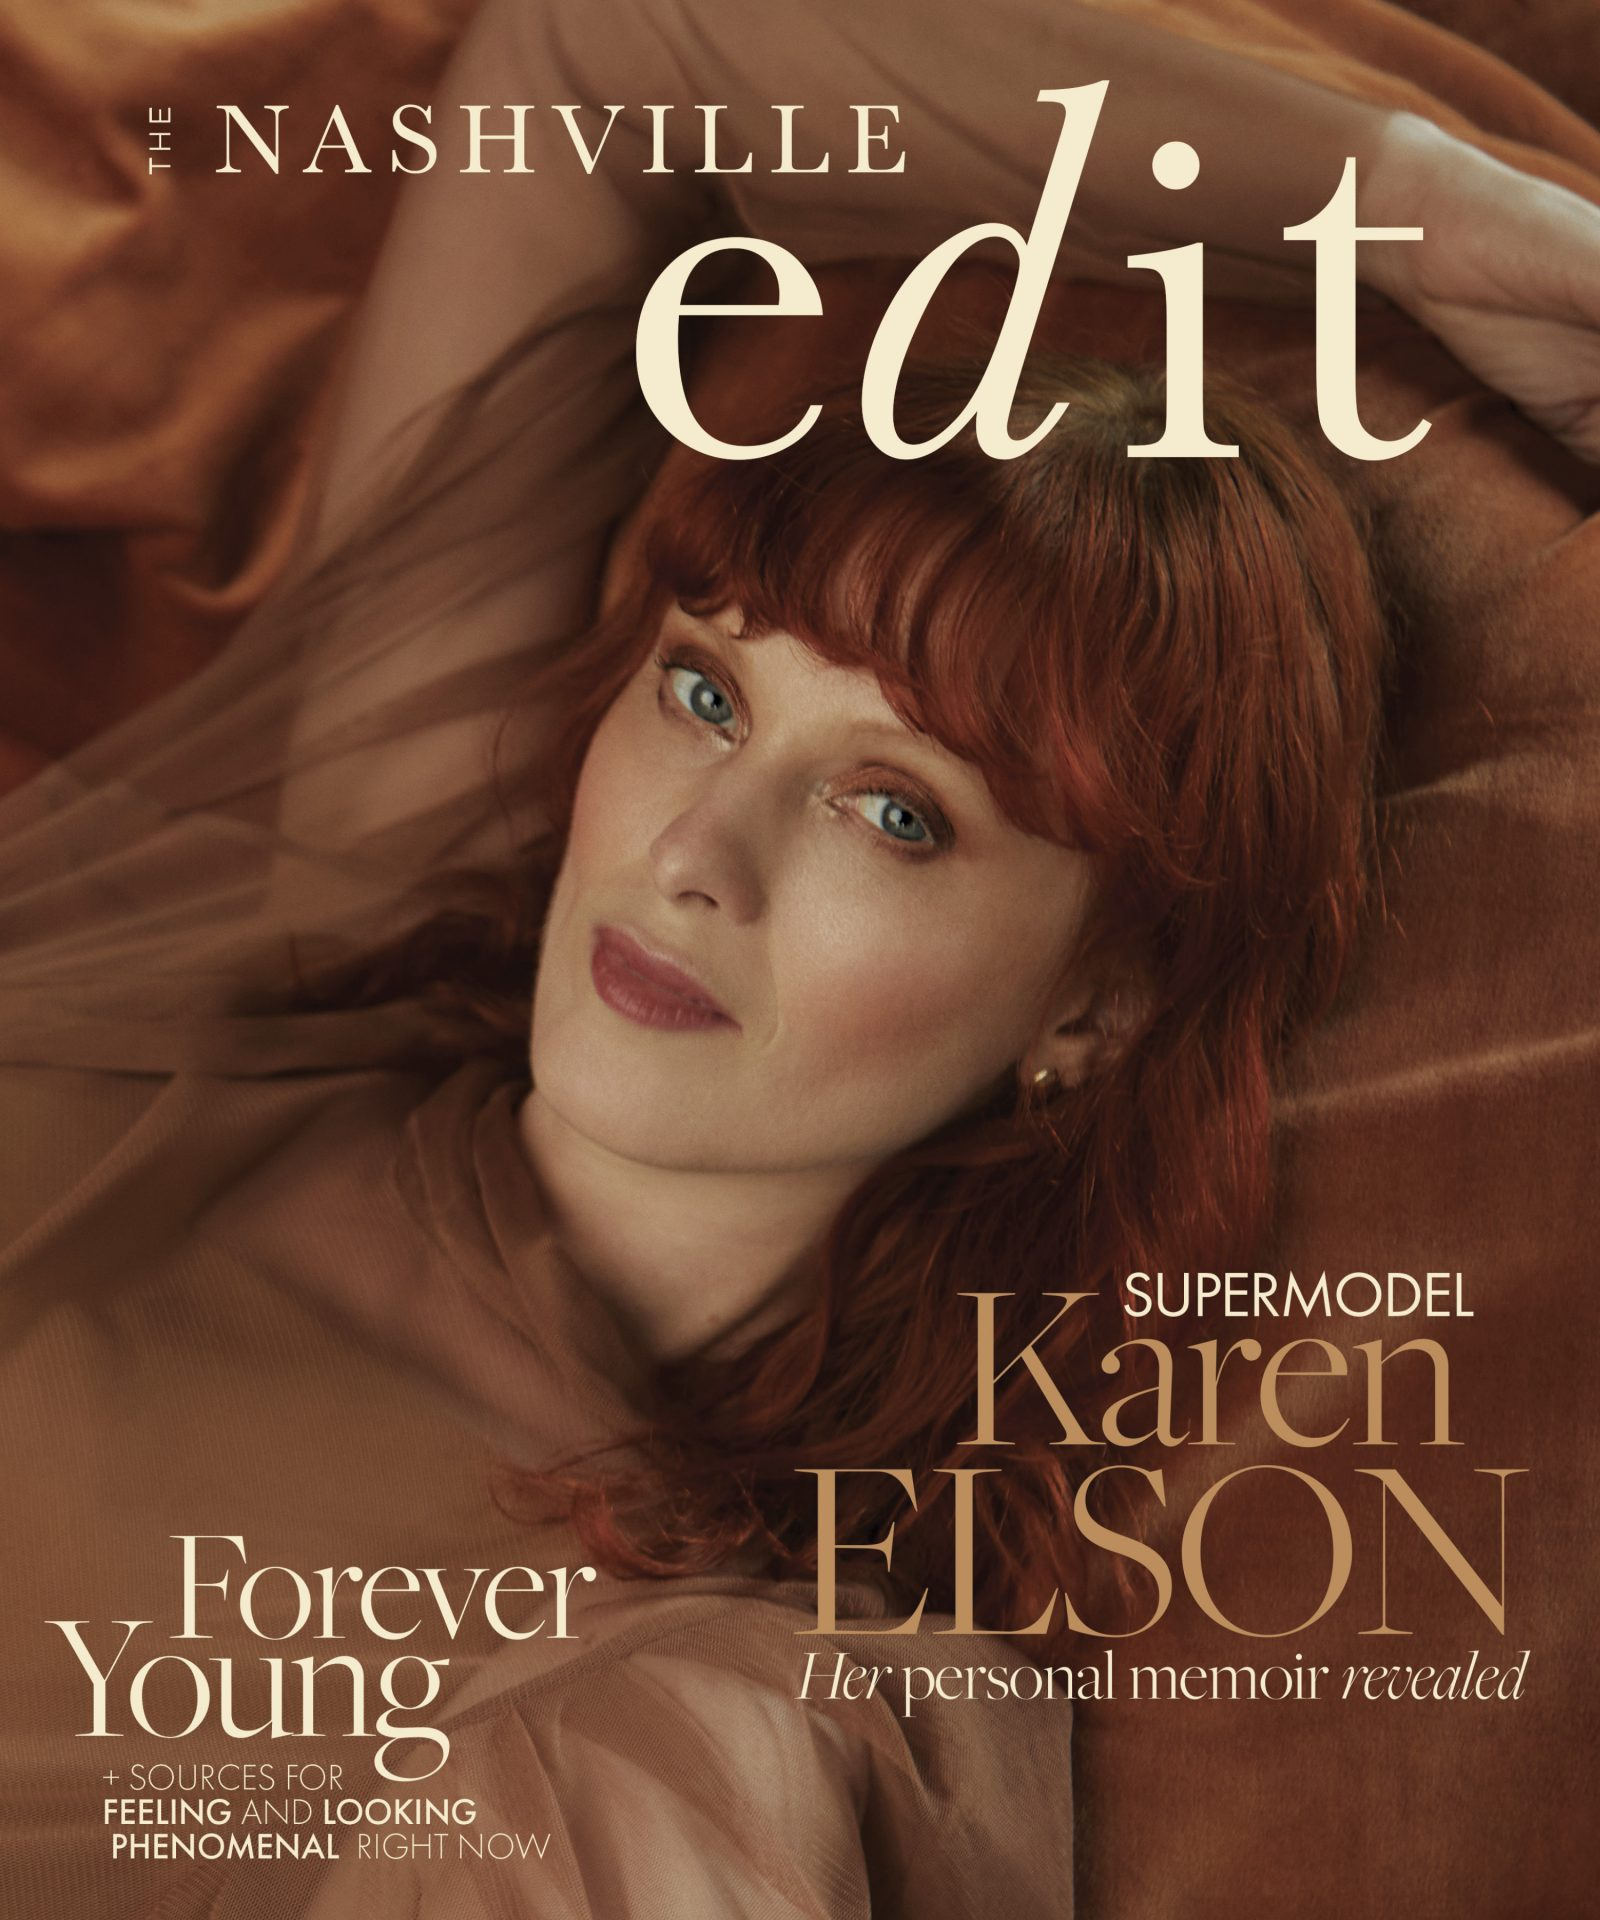 Nashville Edit Cover Story—Supermodel Karen Elson